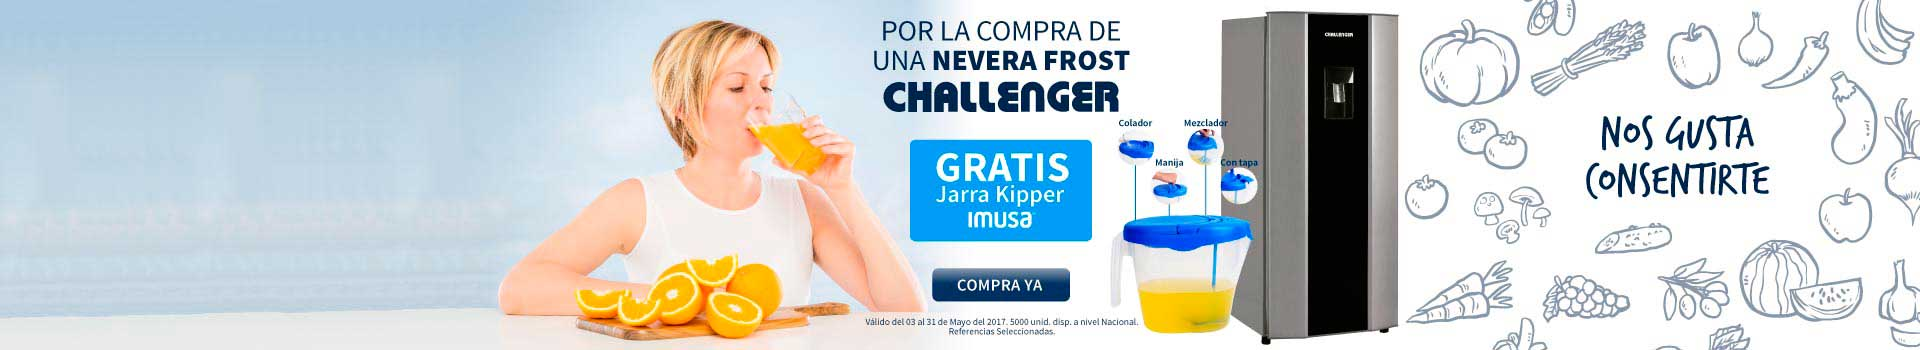 CAT ELECT - mayo 5 - Obsequios CHALLENGER Neveras FROST